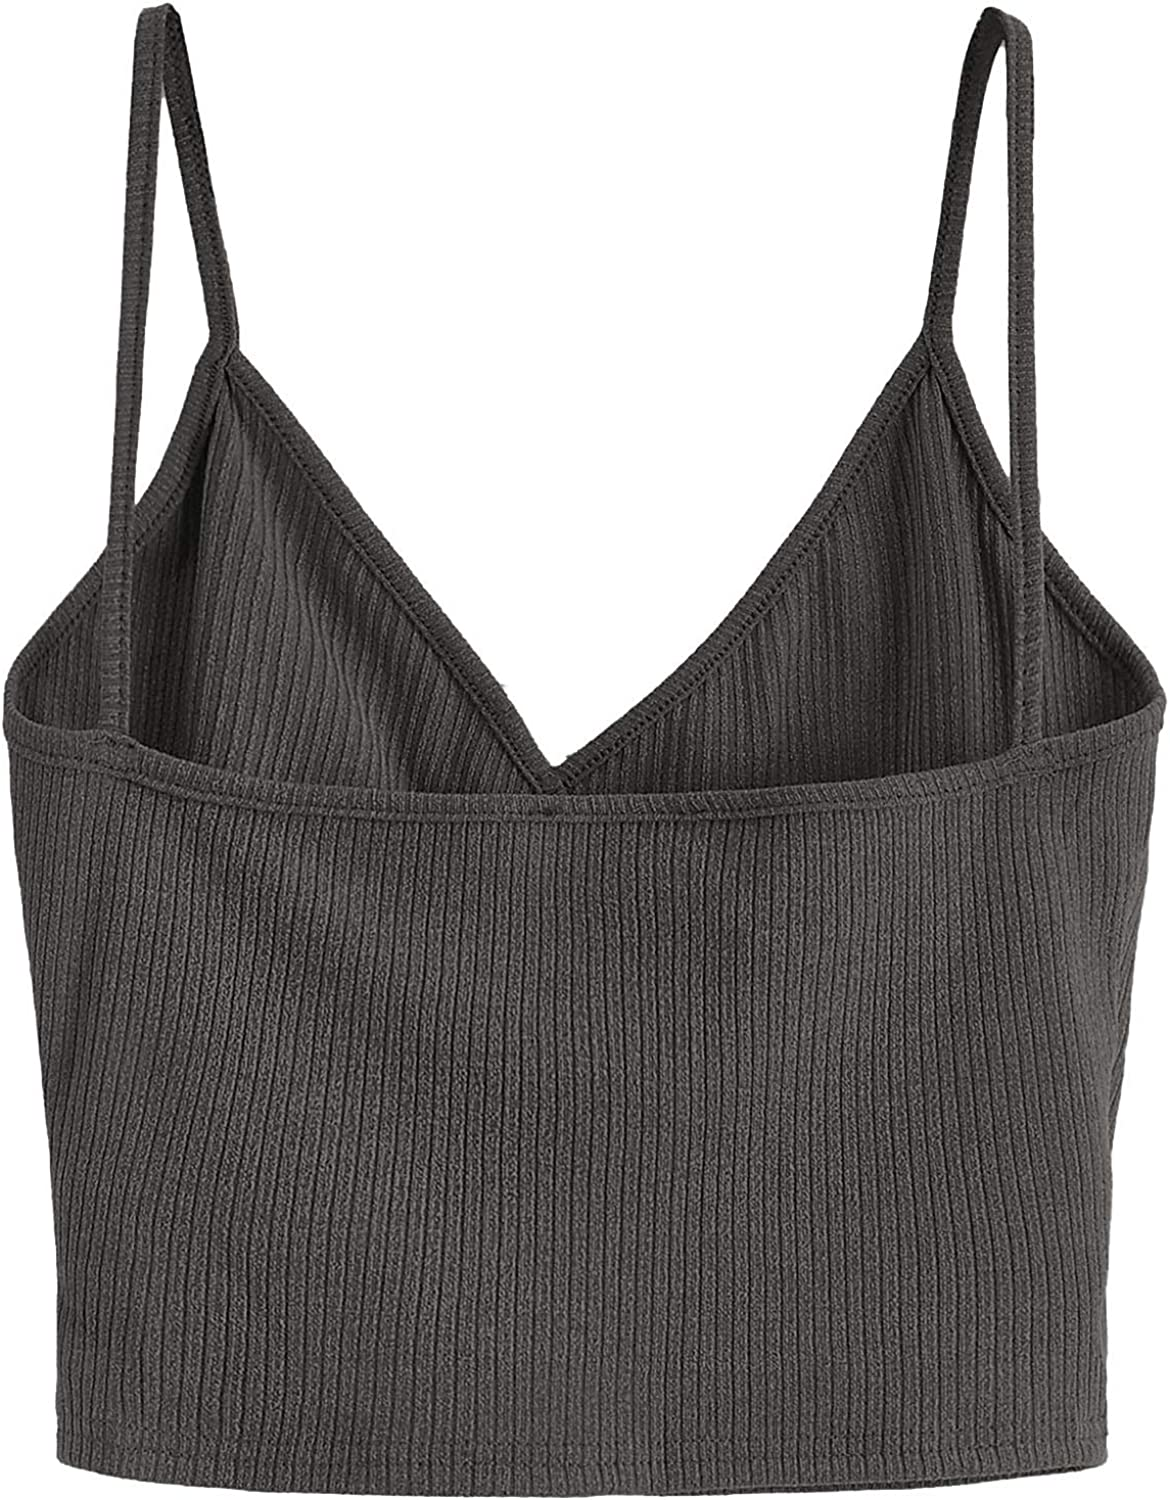 SheIn Womens Casual V Neck Ribbed Knit Overlap Front Crop Cami Top